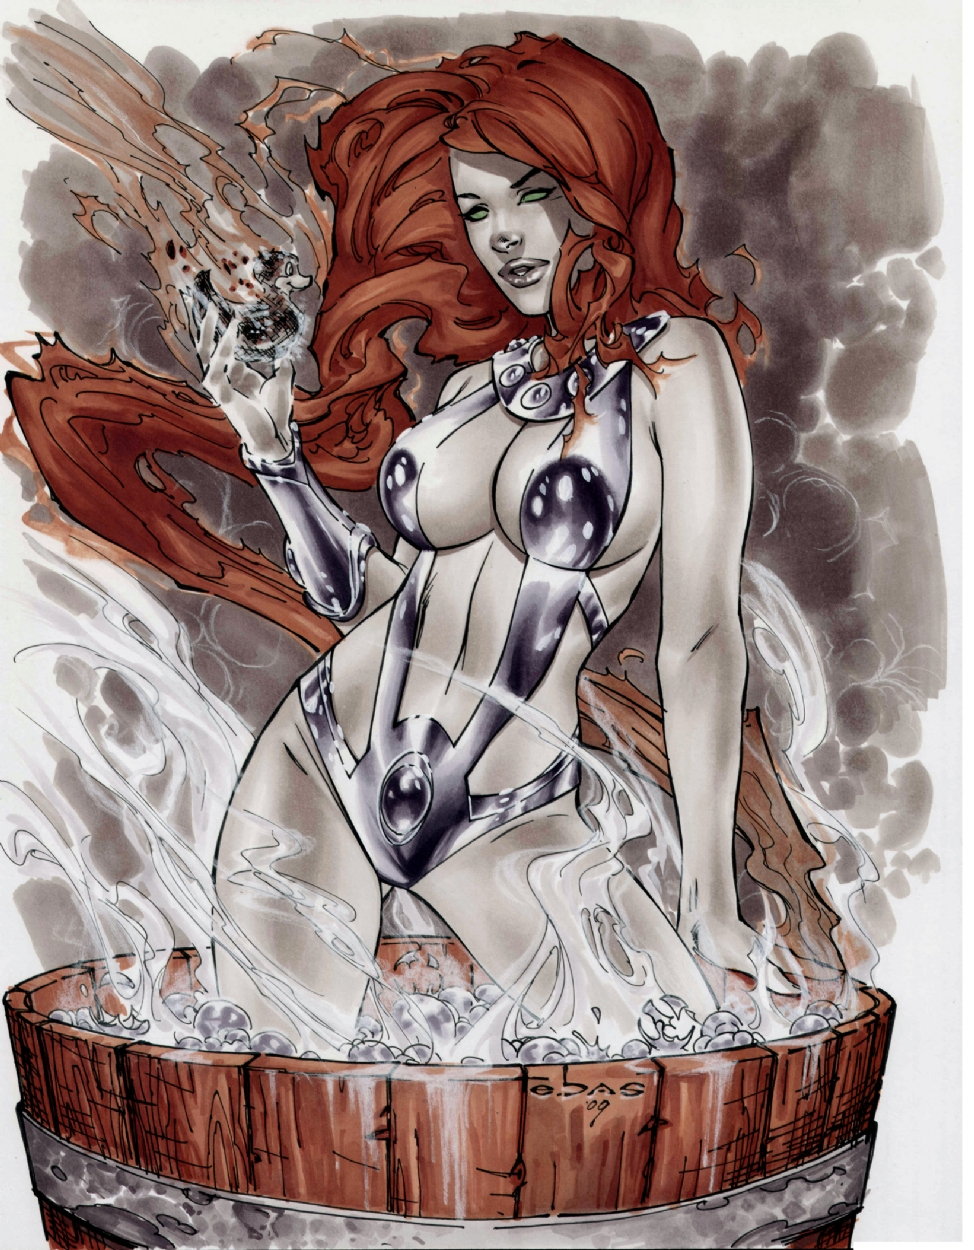 Starfire in a steaming HOT tub Comic Art